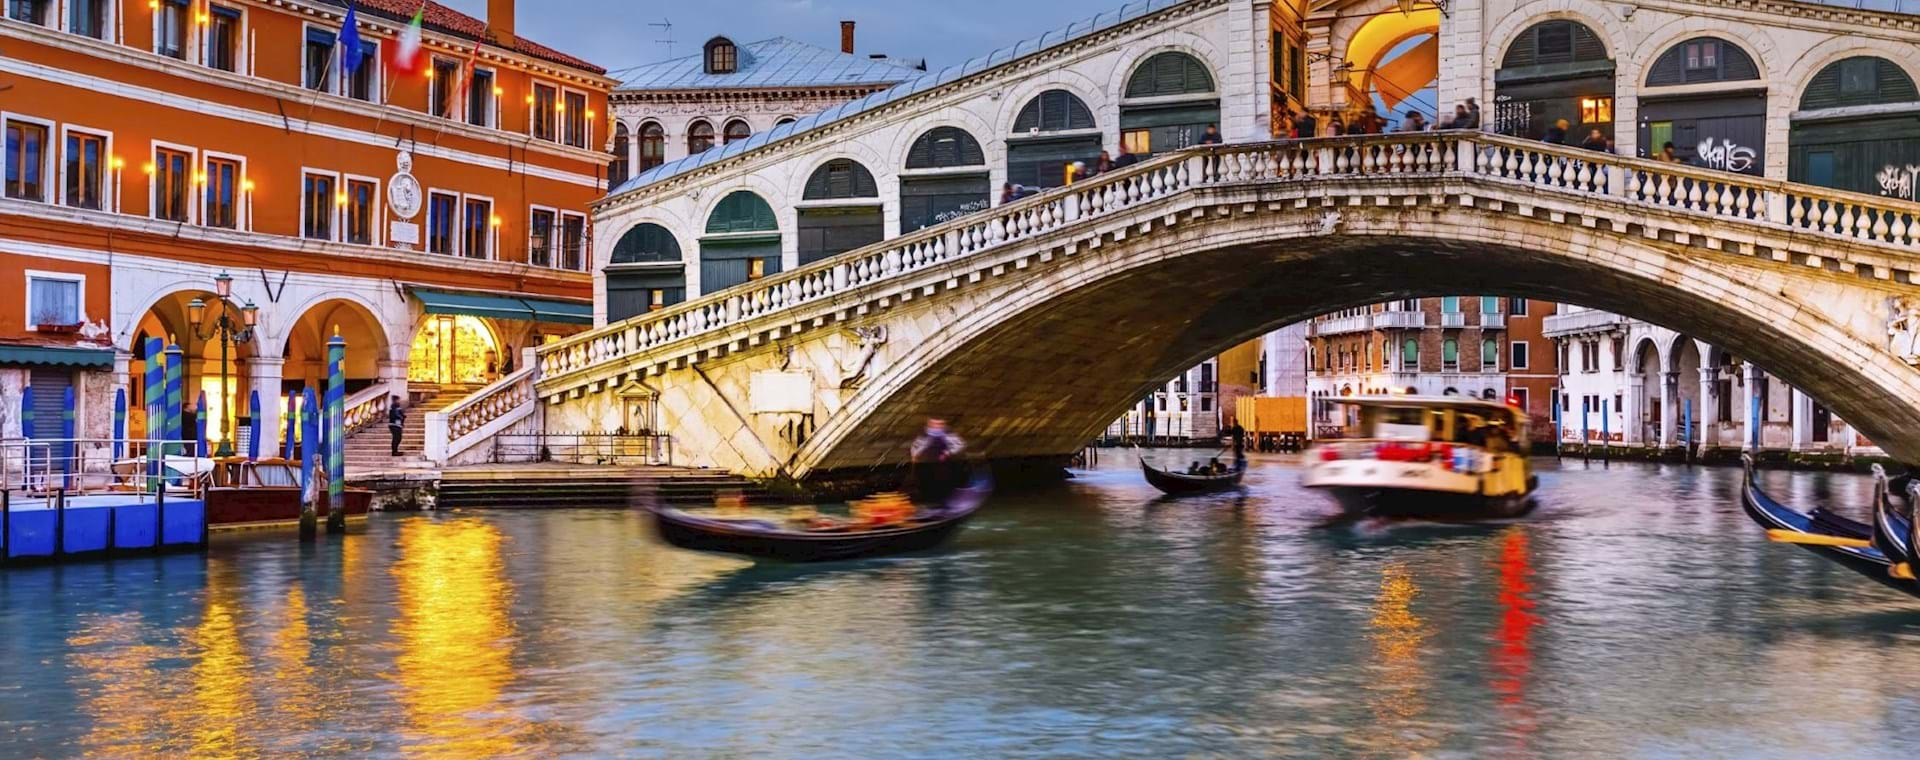 Full-Day Combo: Best of Venice & Venetian Islands Tour